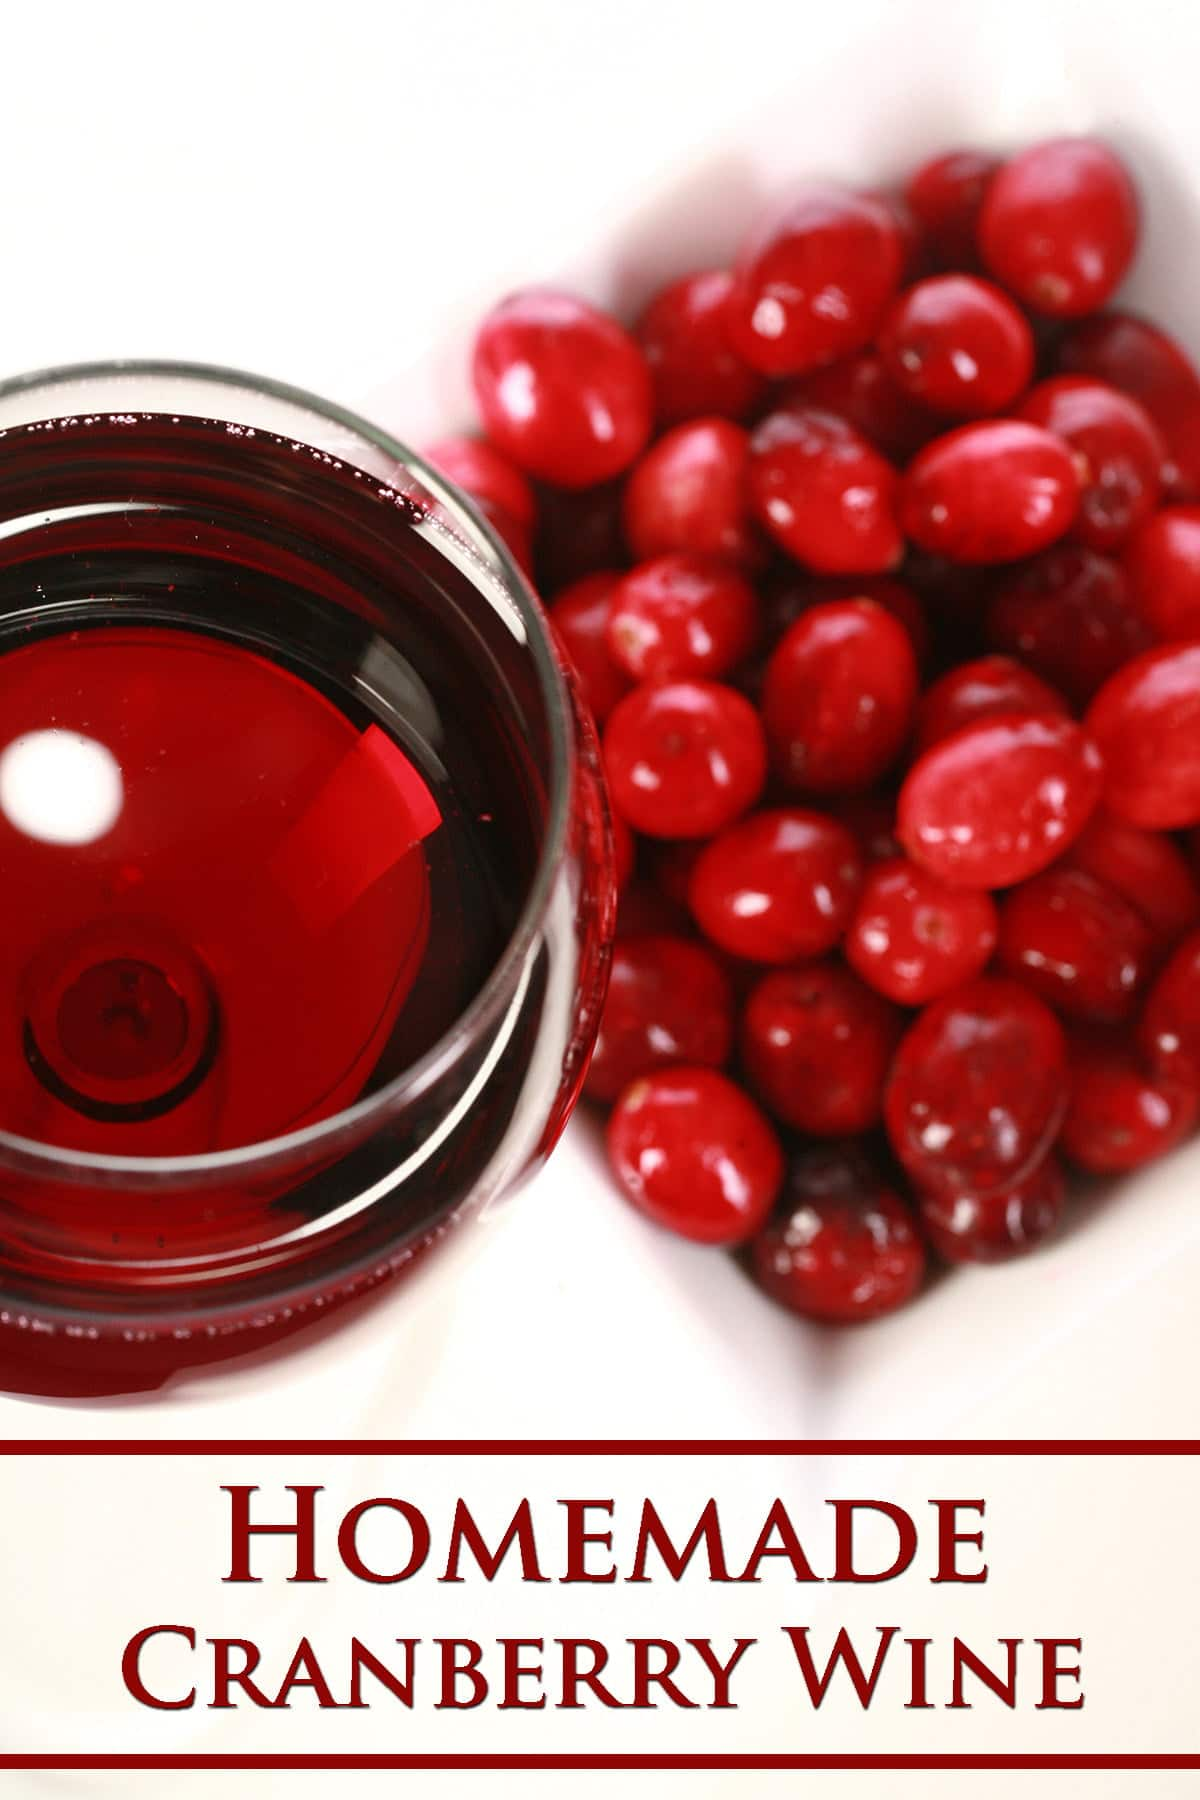 A glass of cranberry wine is pictured next to a small bowl of fresh cranberries, against a white background.